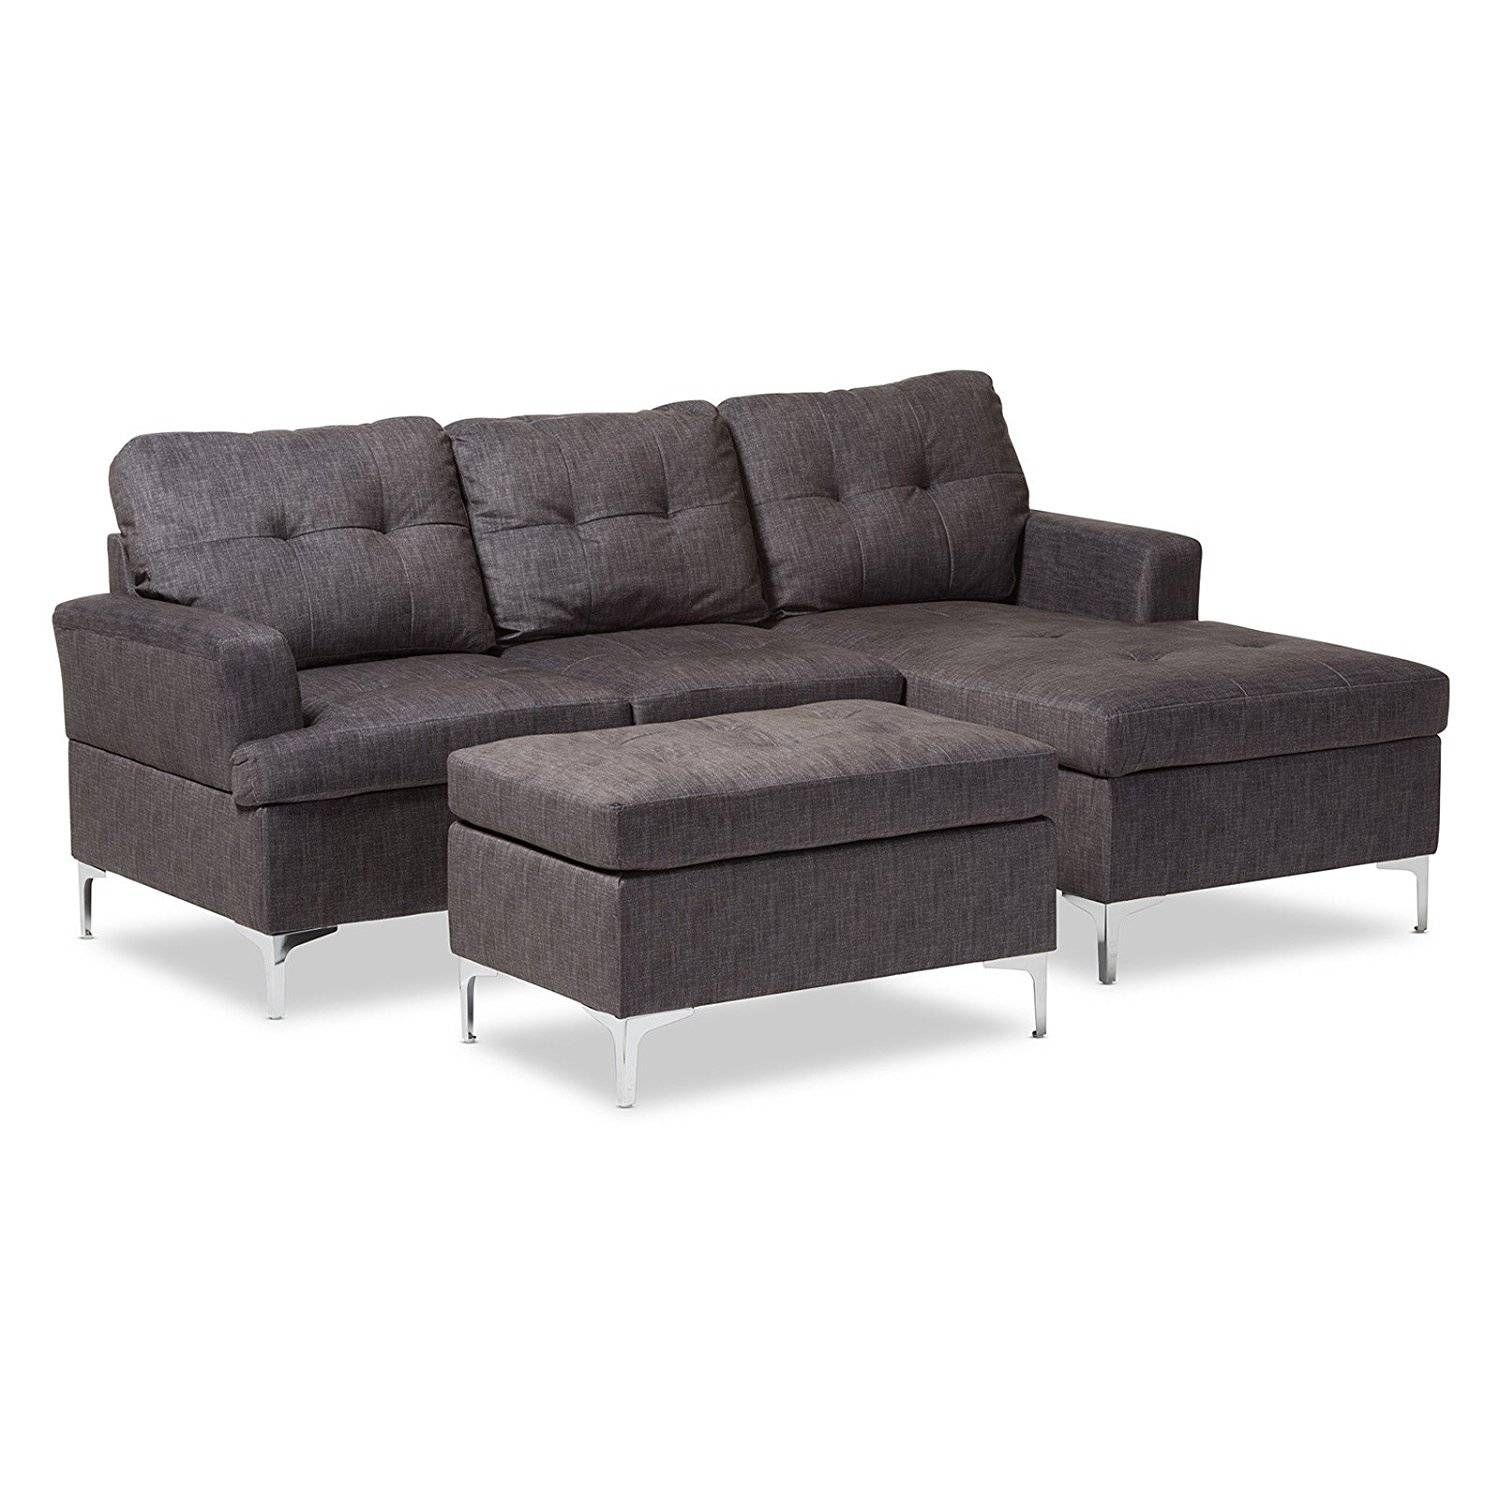 Furniture: Elegant Baxton Studio Sectional For Mid Century Modern with Dobson Sectional Sofa (Image 13 of 30)